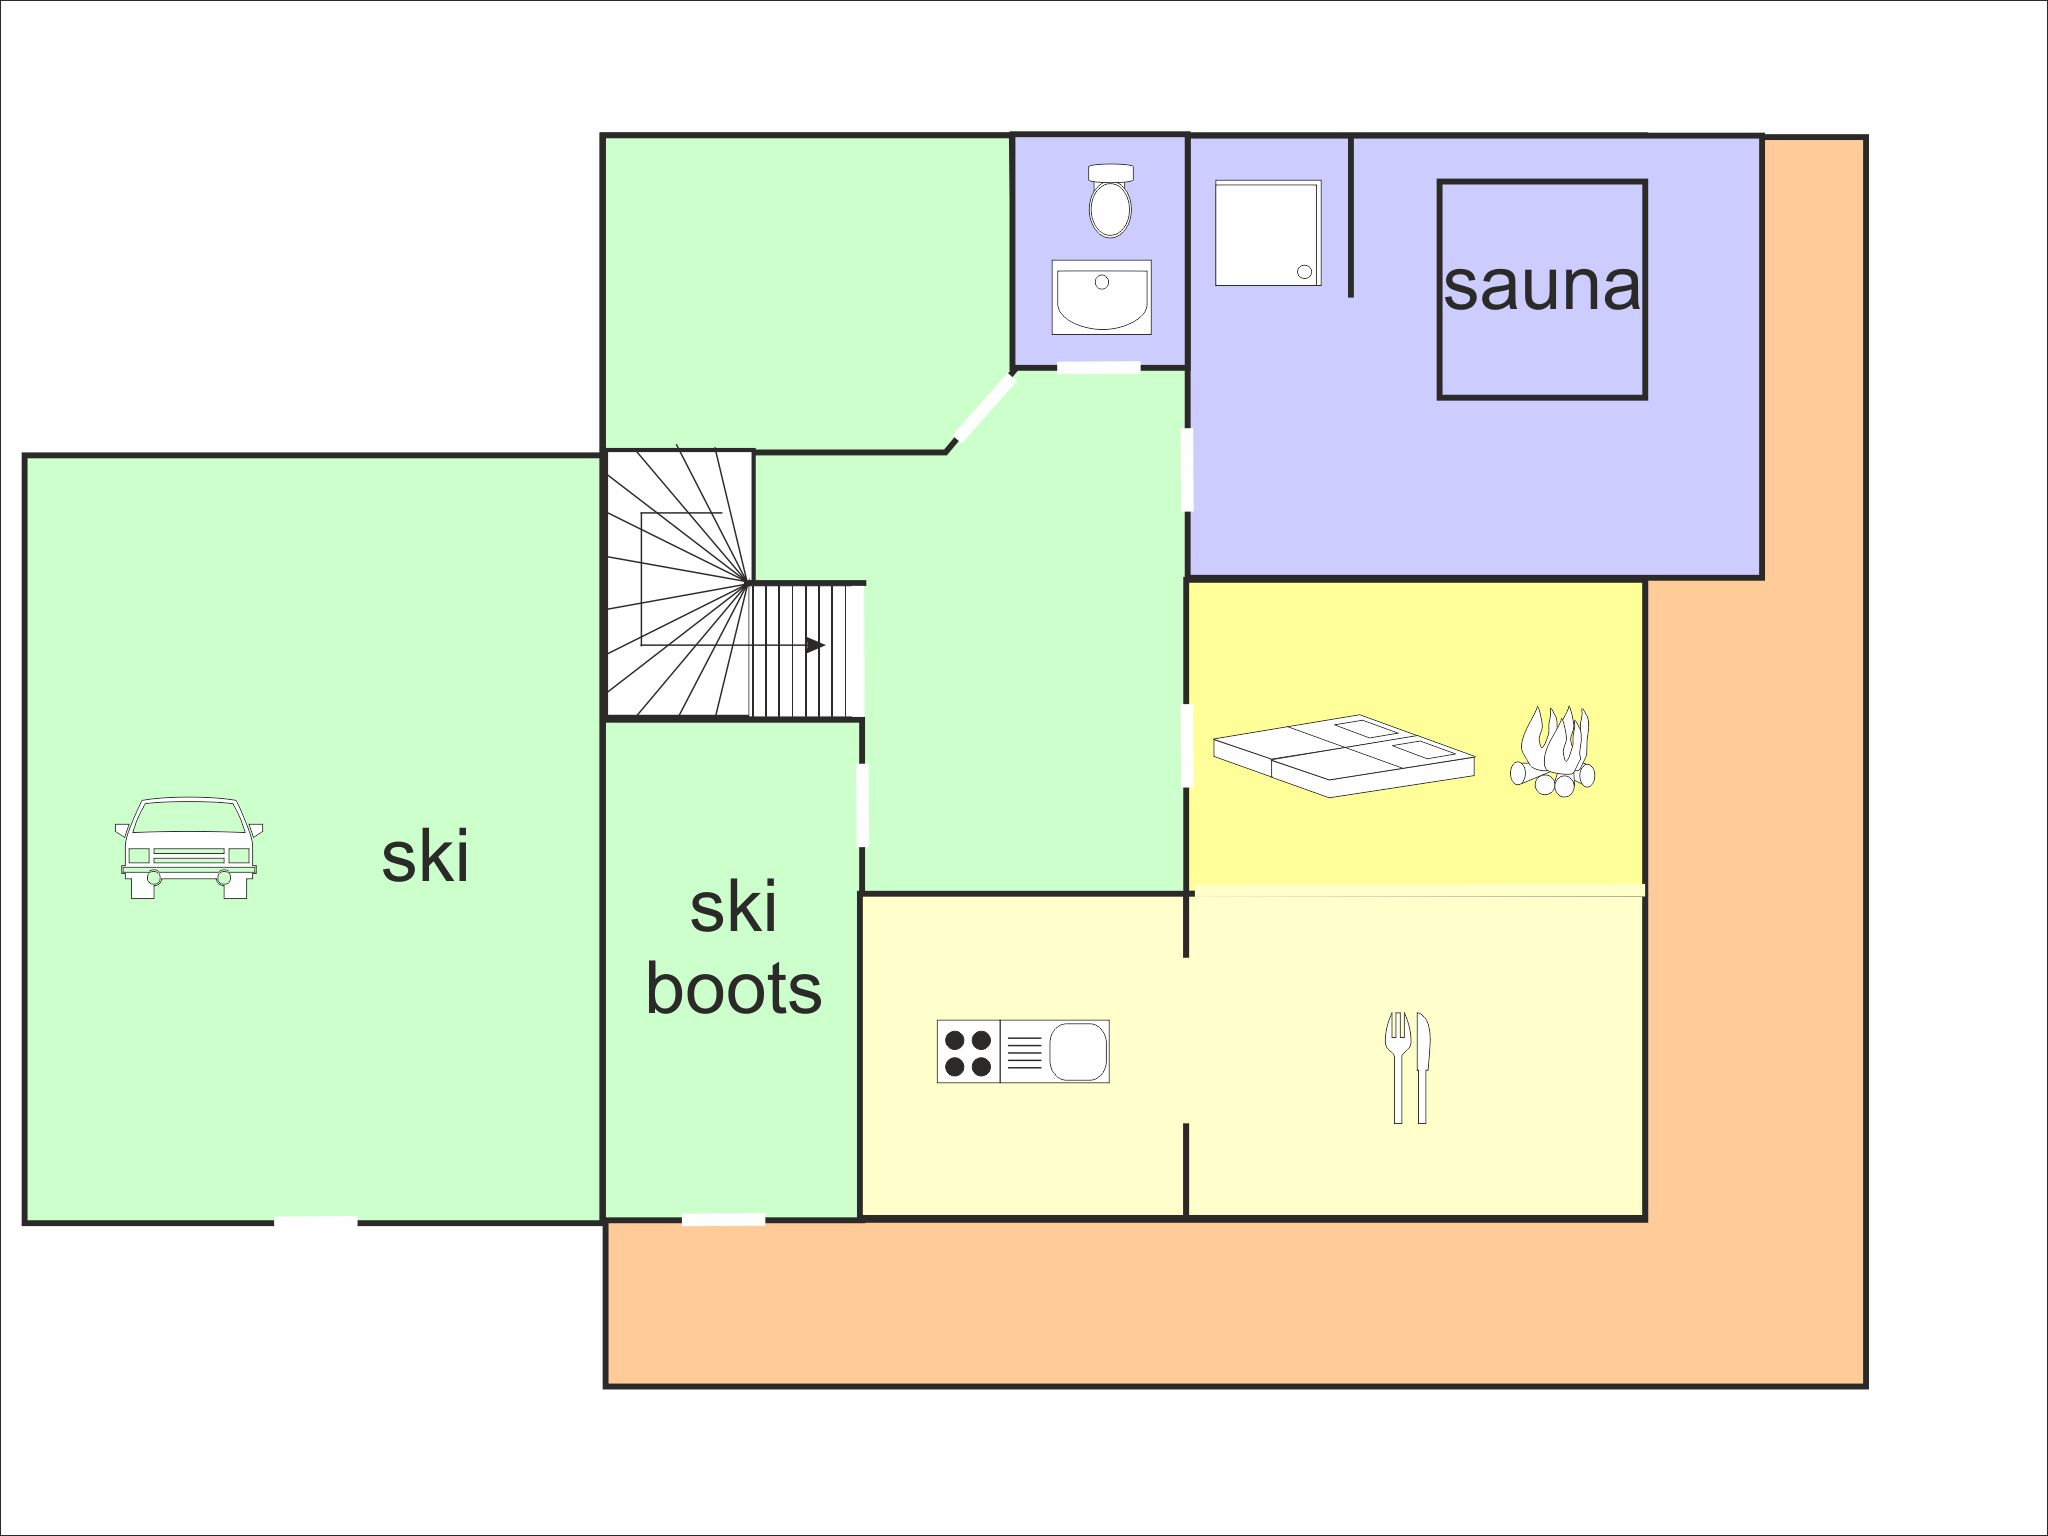 Panorama Hütte Saalbach - floor plan - level 1